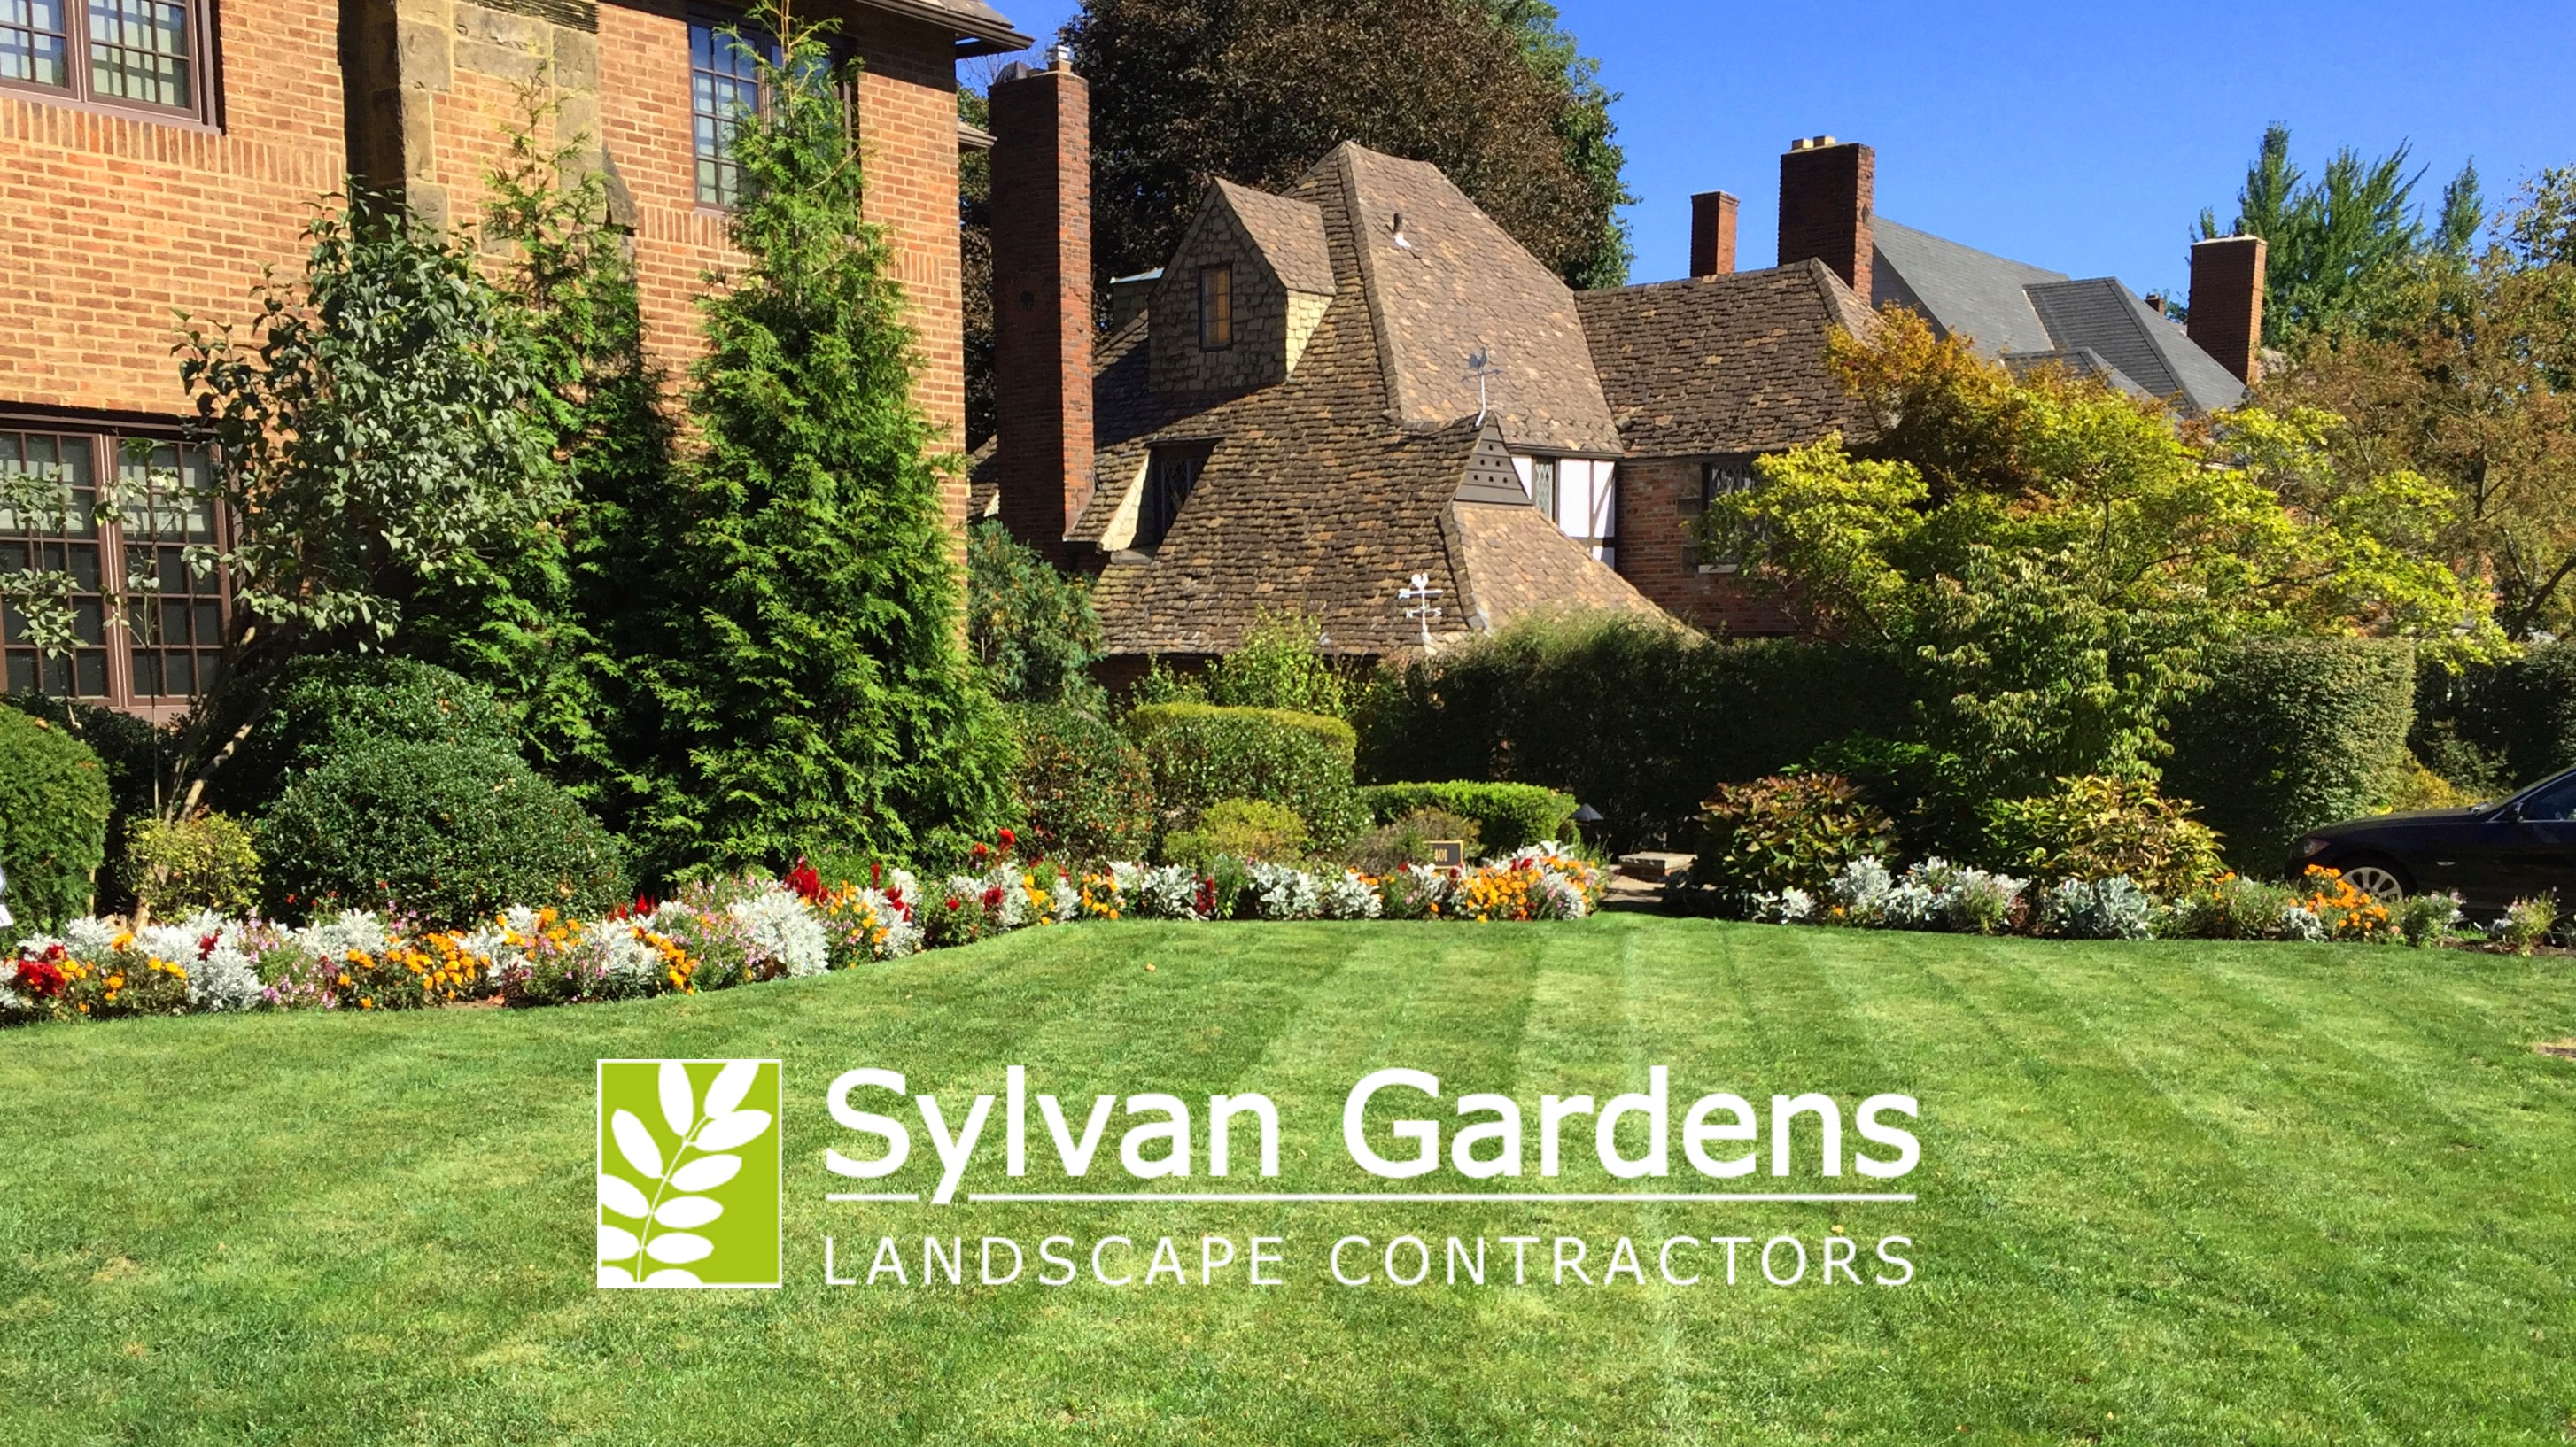 Awards Certifications Sylvan Gardens Landscape Contractors